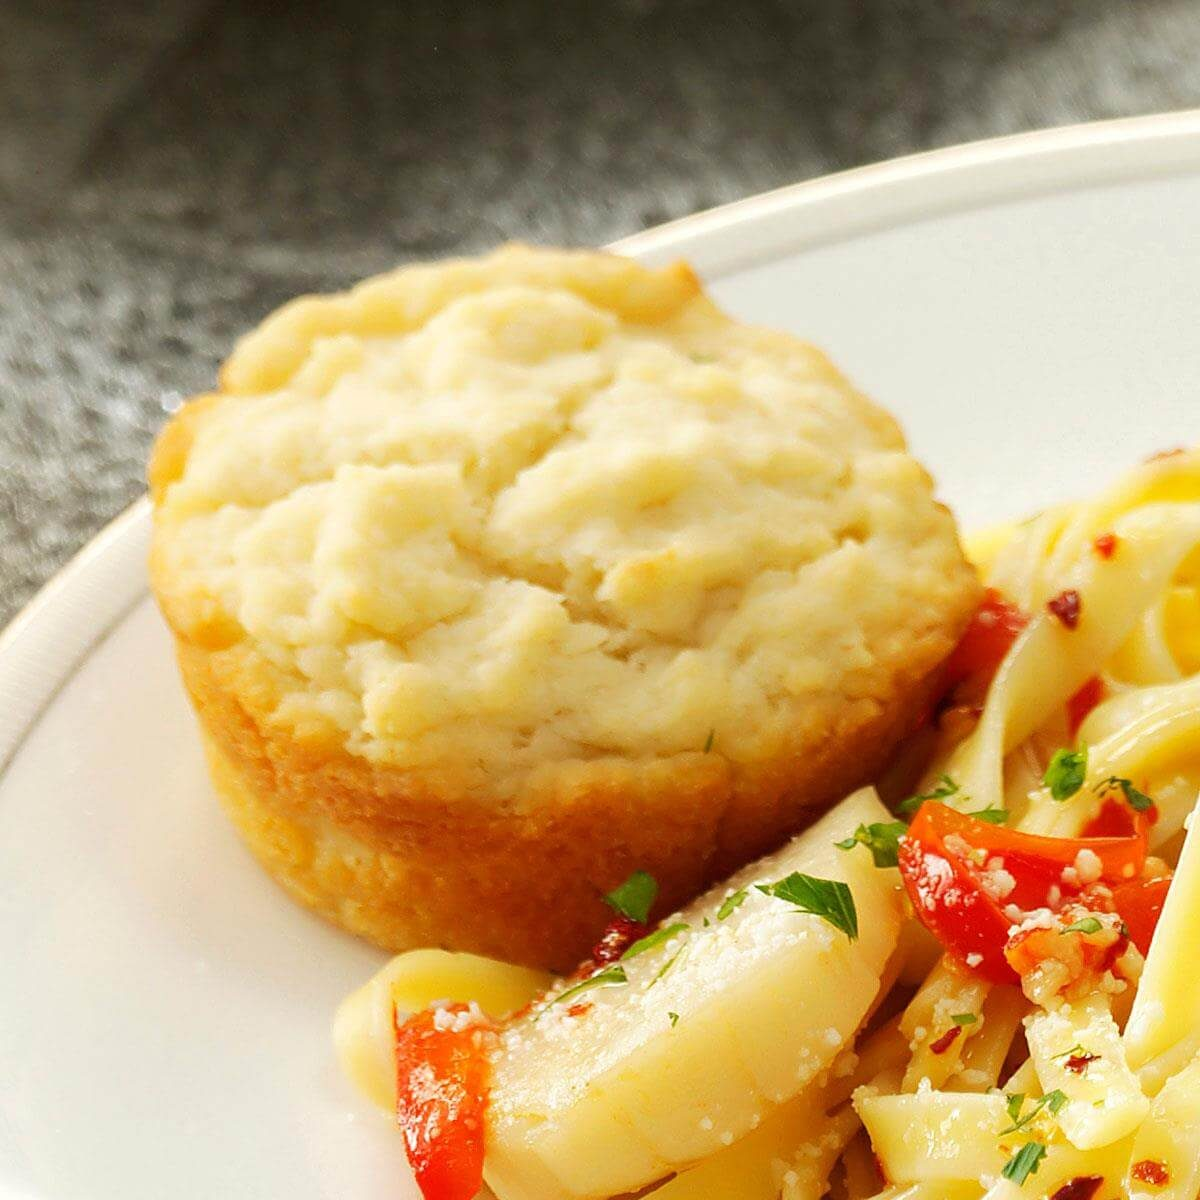 Buttery Sour Cream Muffins